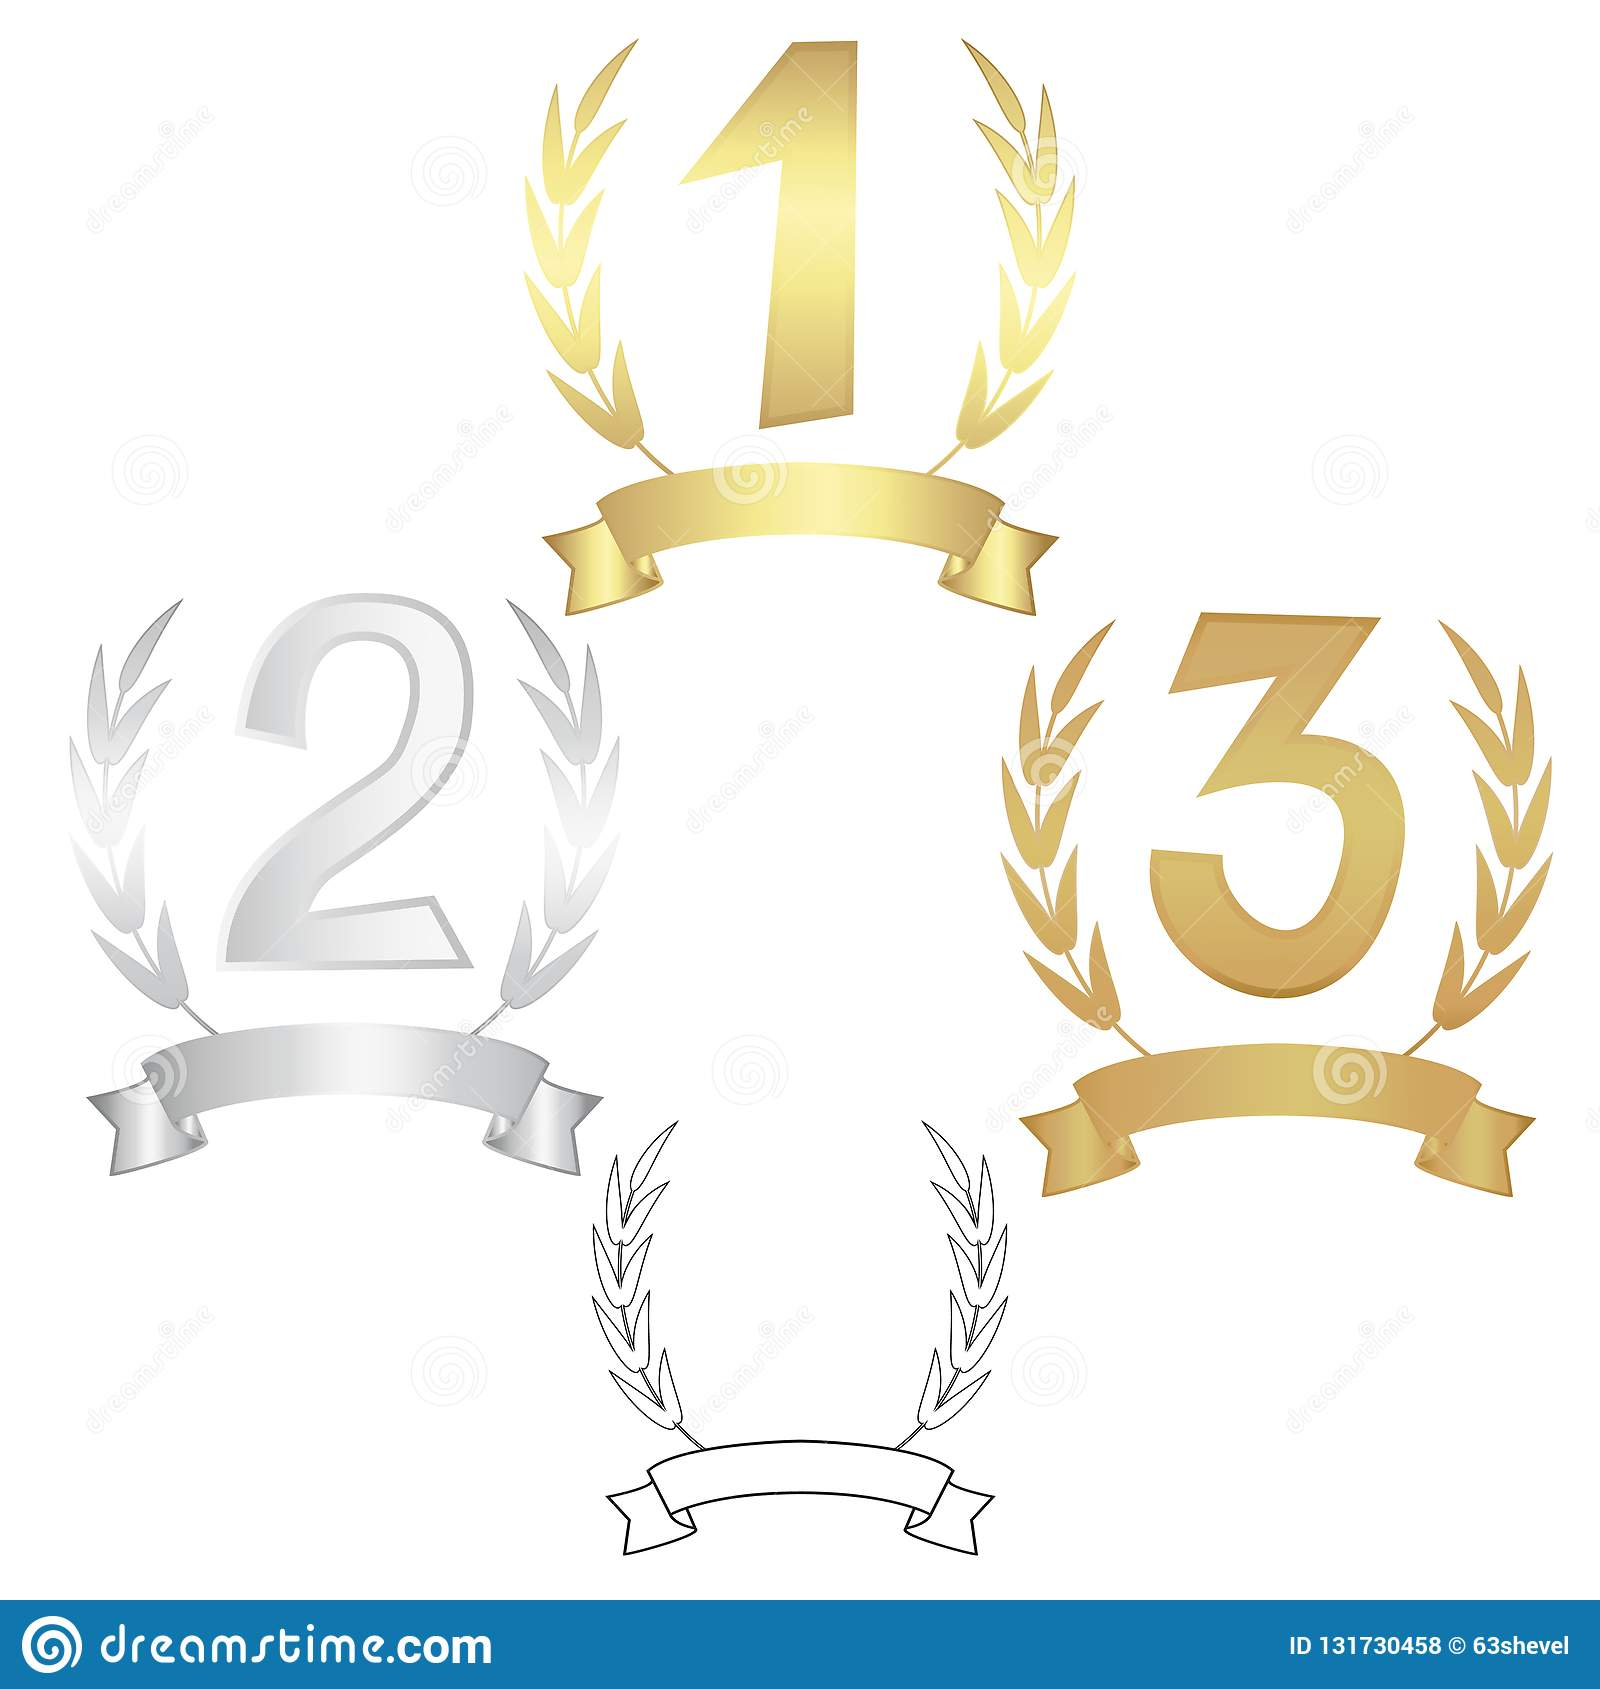 Signs of the winners. The first, second, third with wreaths and ribbons. Vector illustration